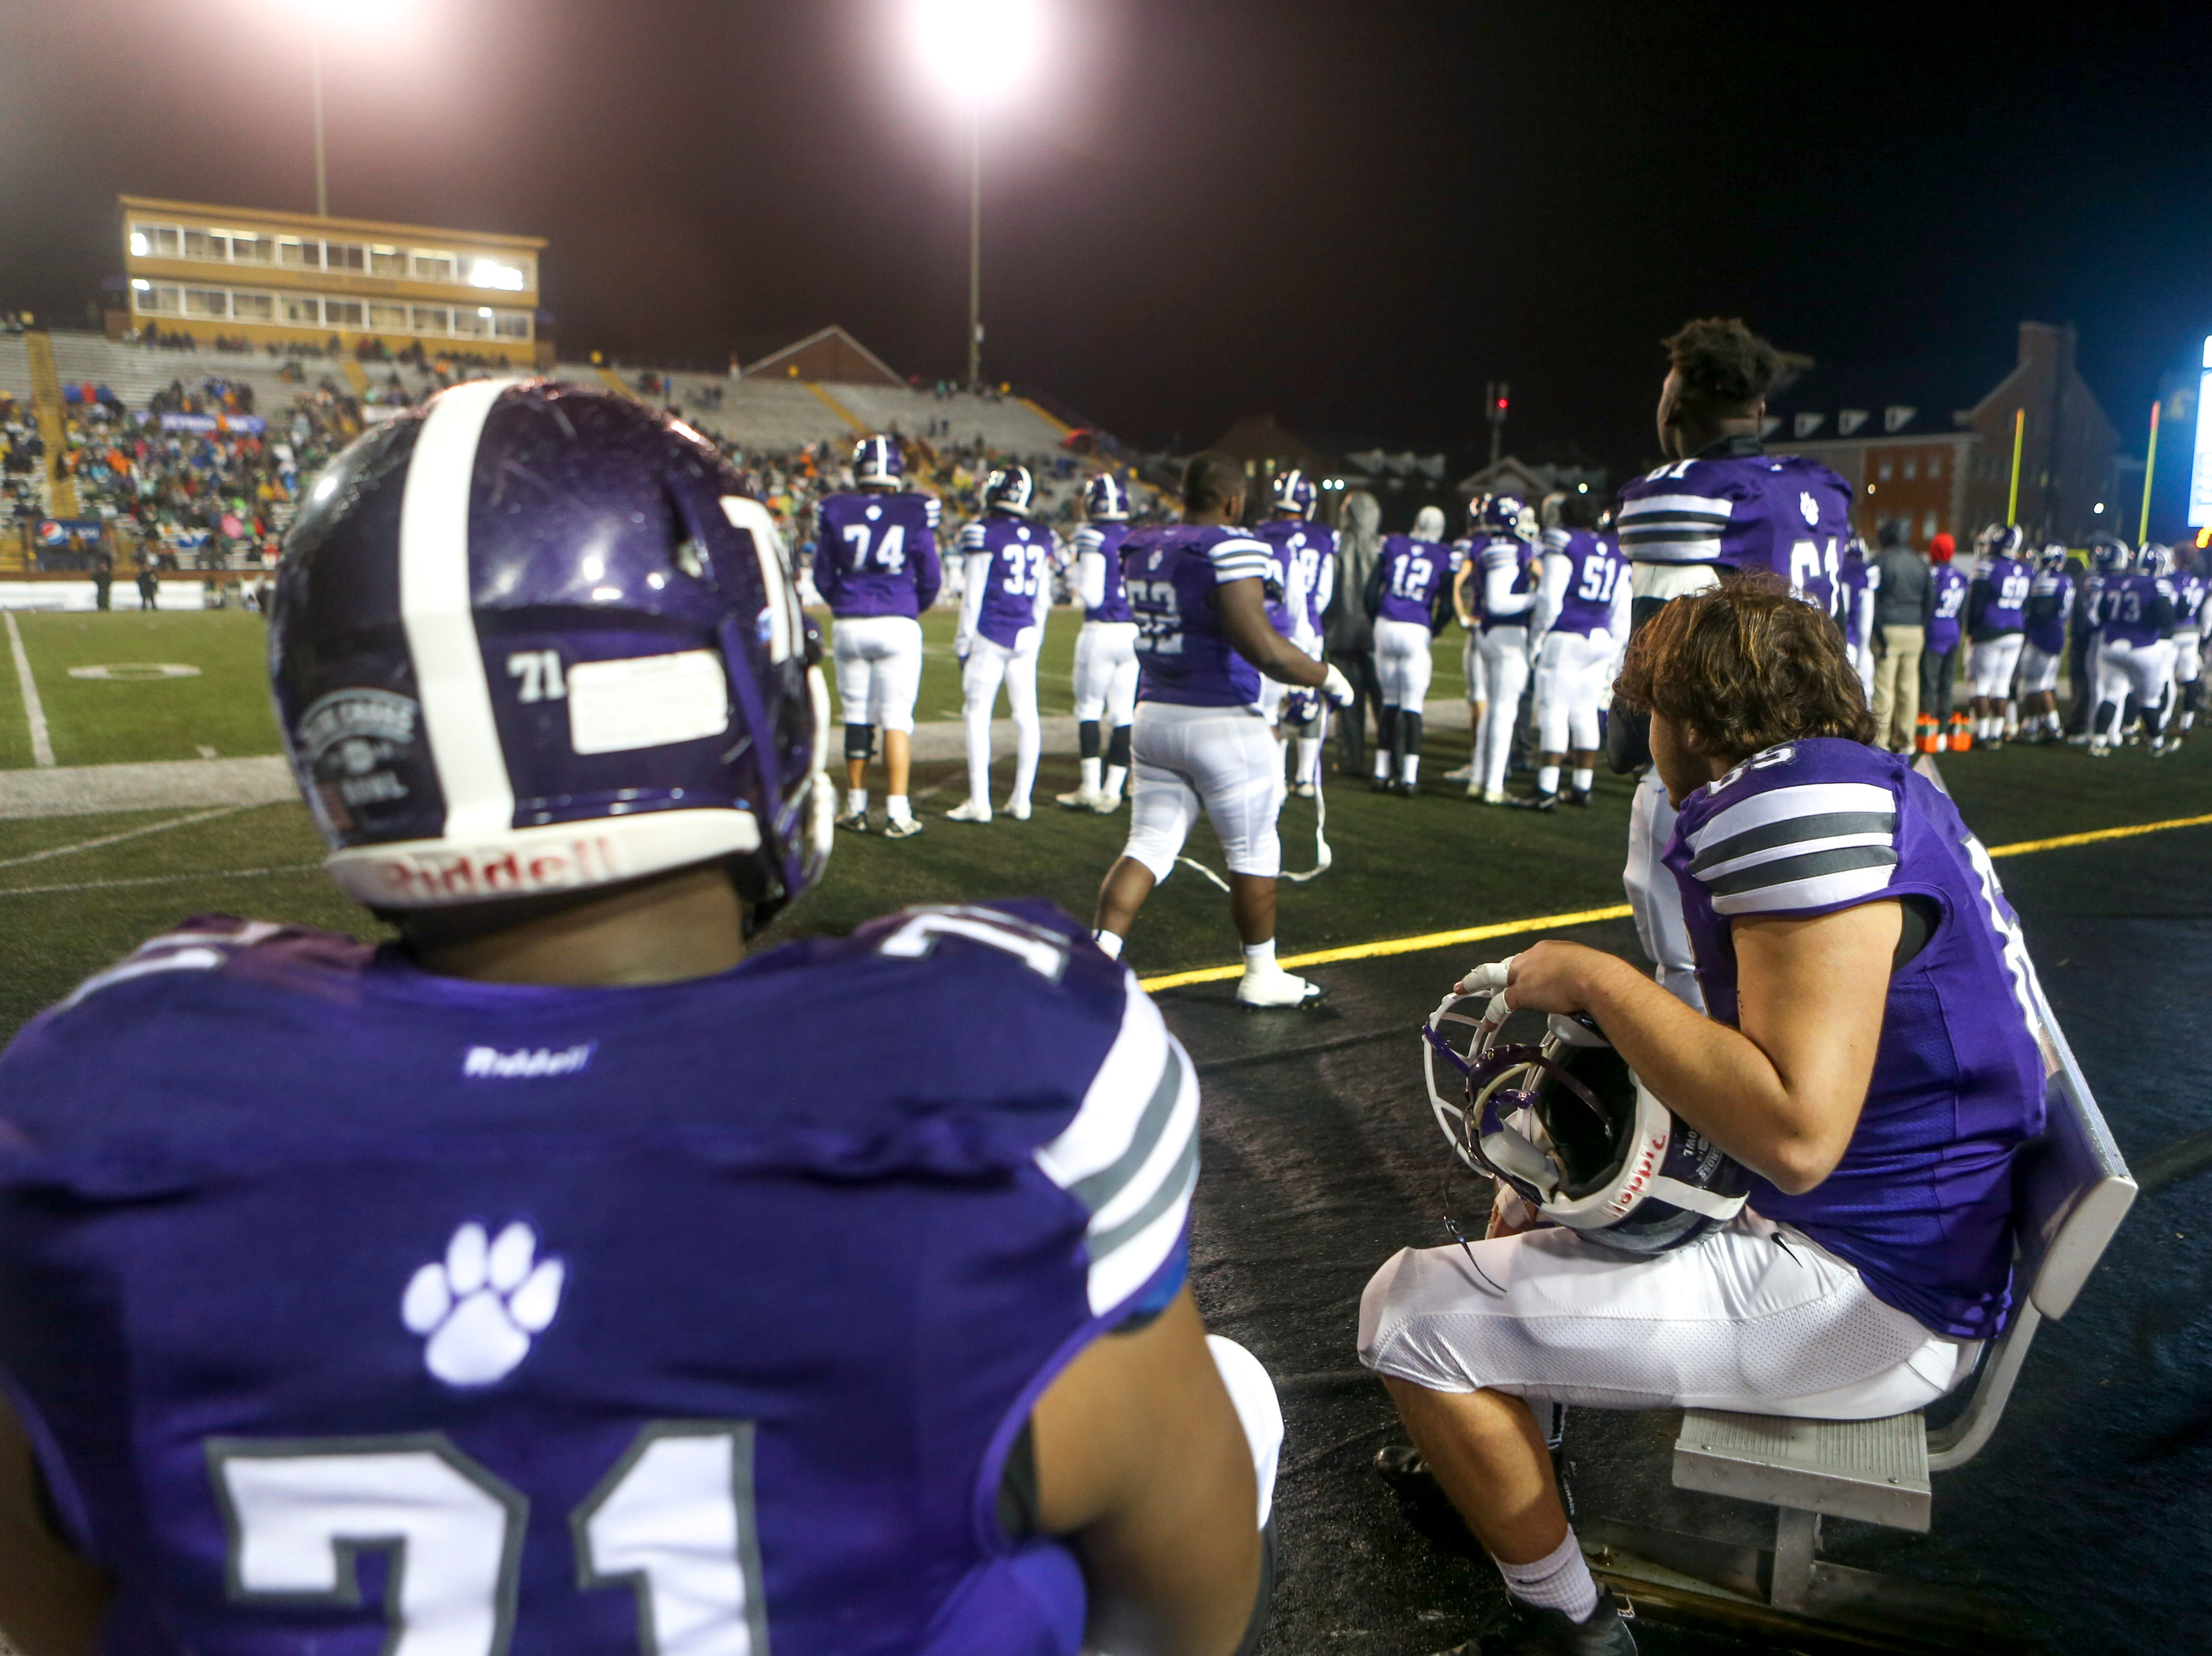 Haywood players sit with one another on the benches during the Class 4A Blue Cross Bowl between Haywood and Greeneville at Tennessee Tech's Tucker Stadium in Cookeville, Tenn., on Thursday, Nov. 29, 2018.